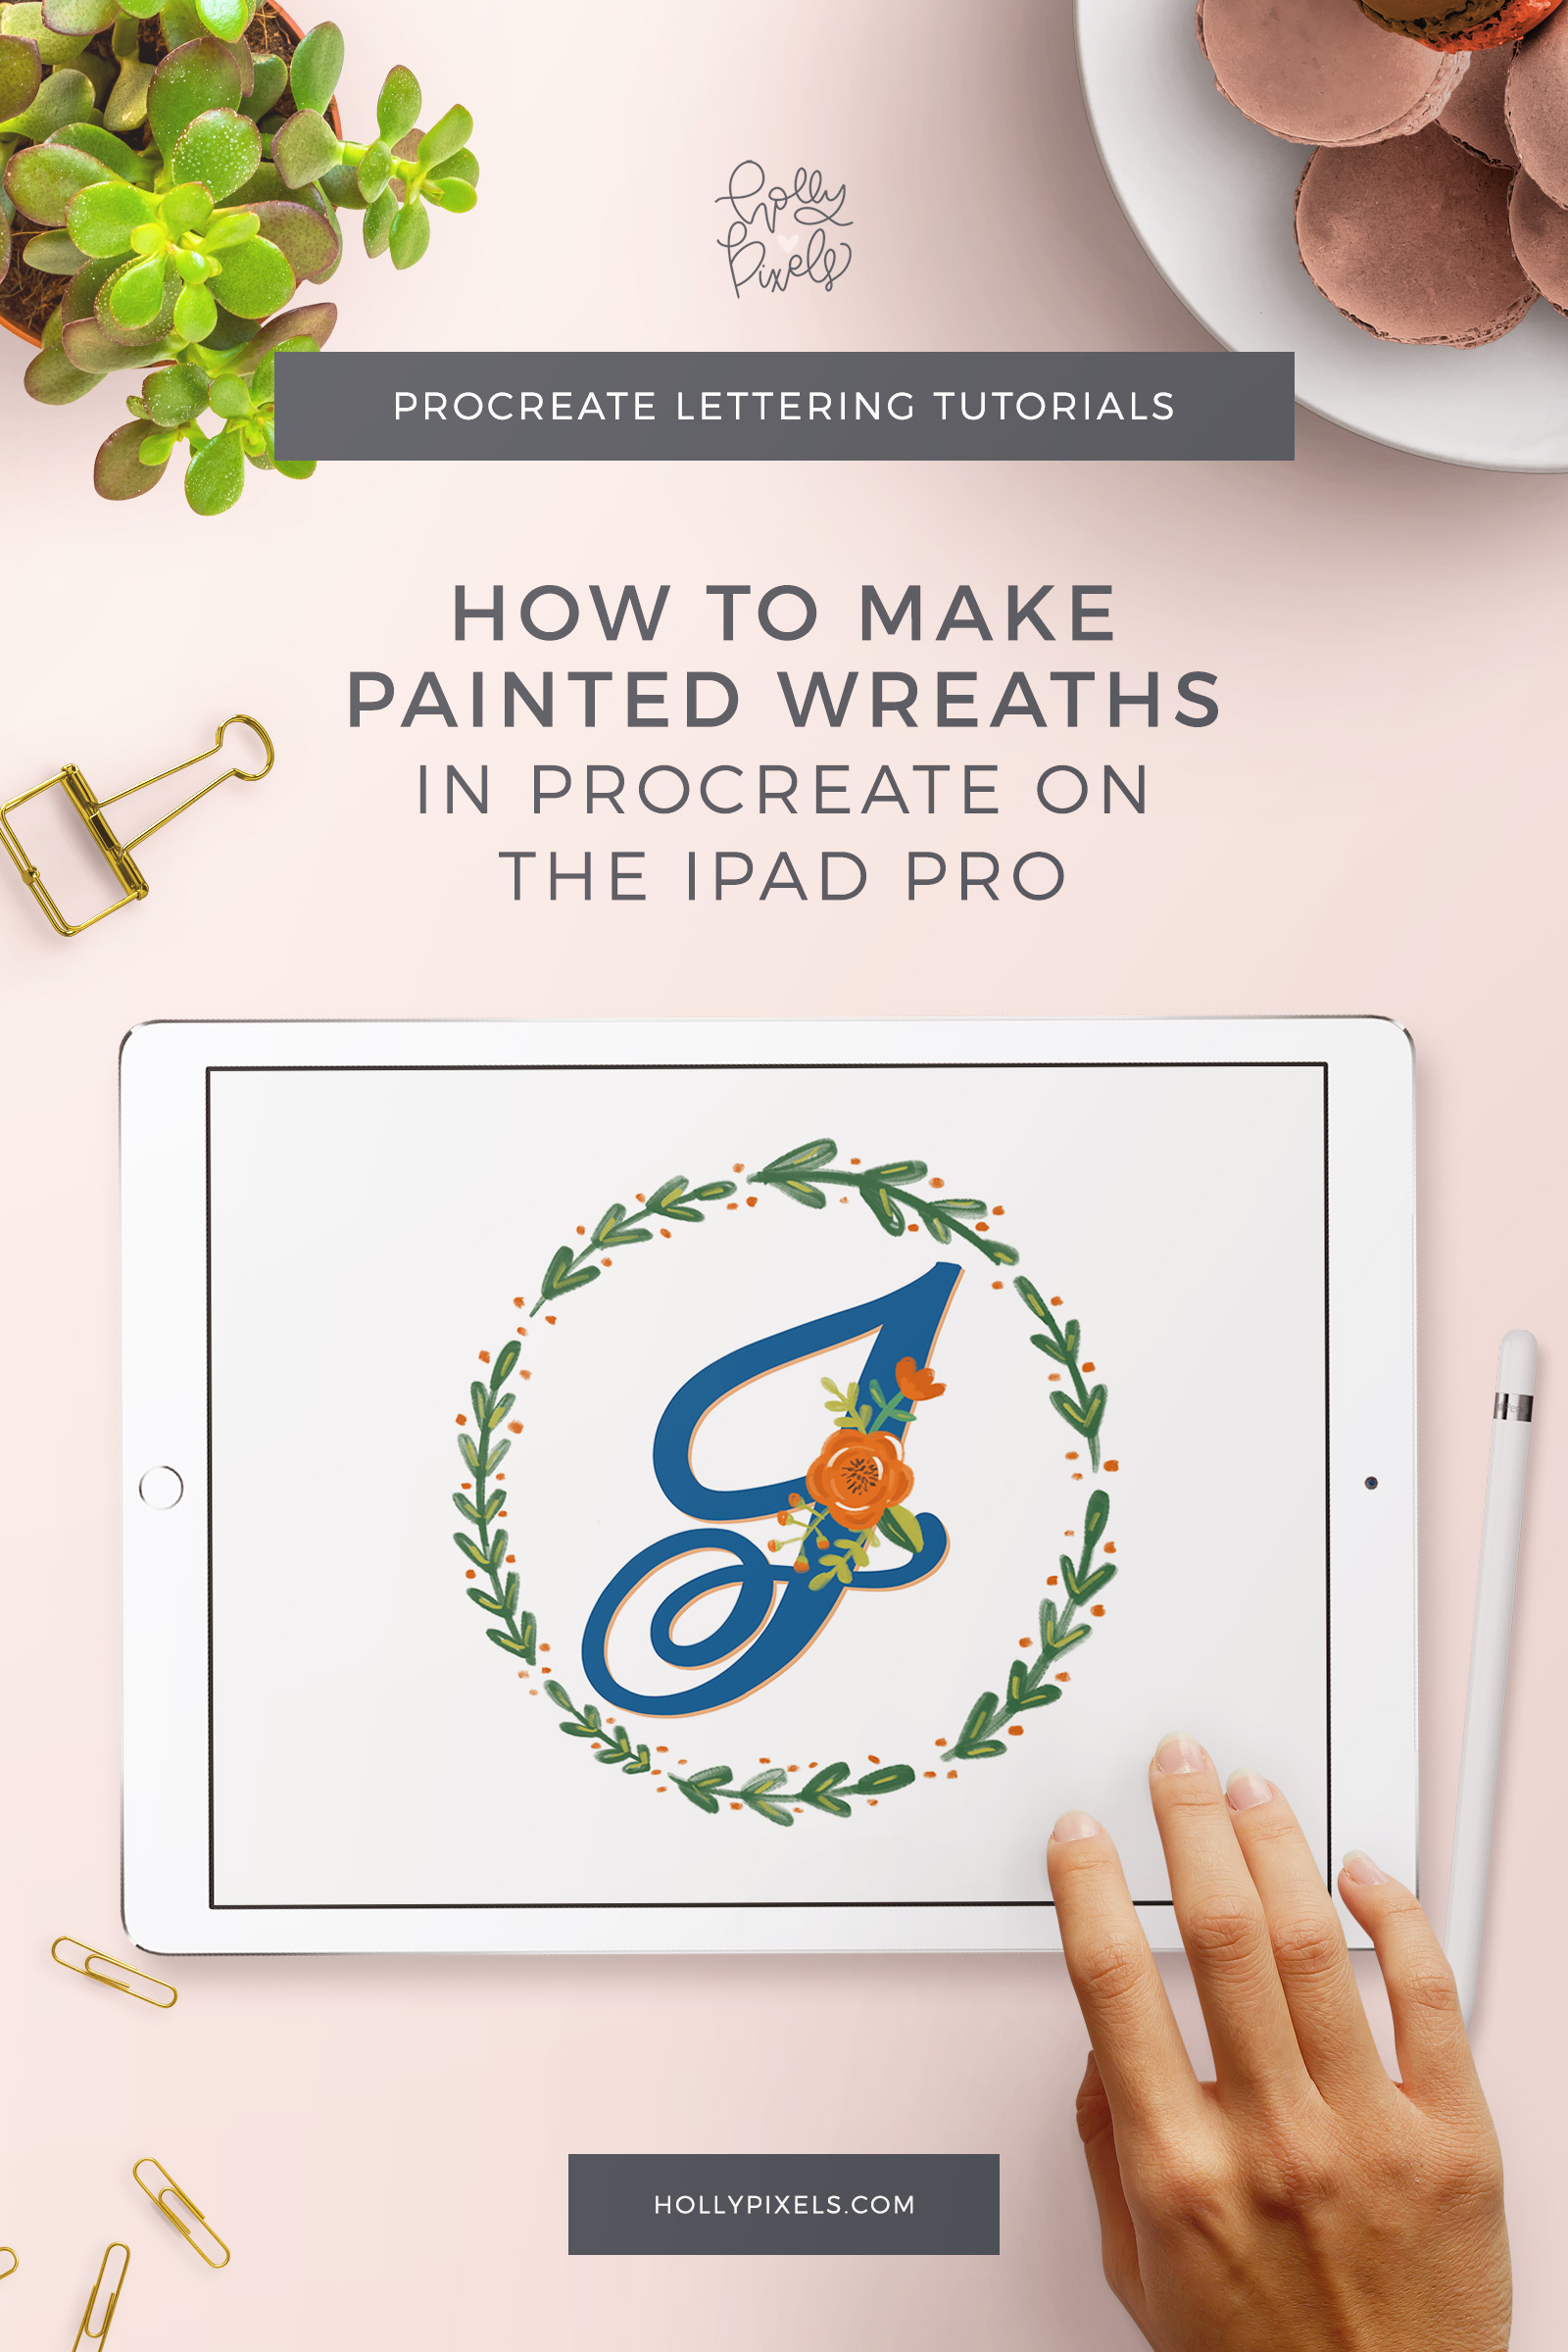 This week I'm going to show you how I created painted floral wreaths in Procreate on the iPad Pro so we can piggy back onto last week's video. Anyone can learn brush lettering.